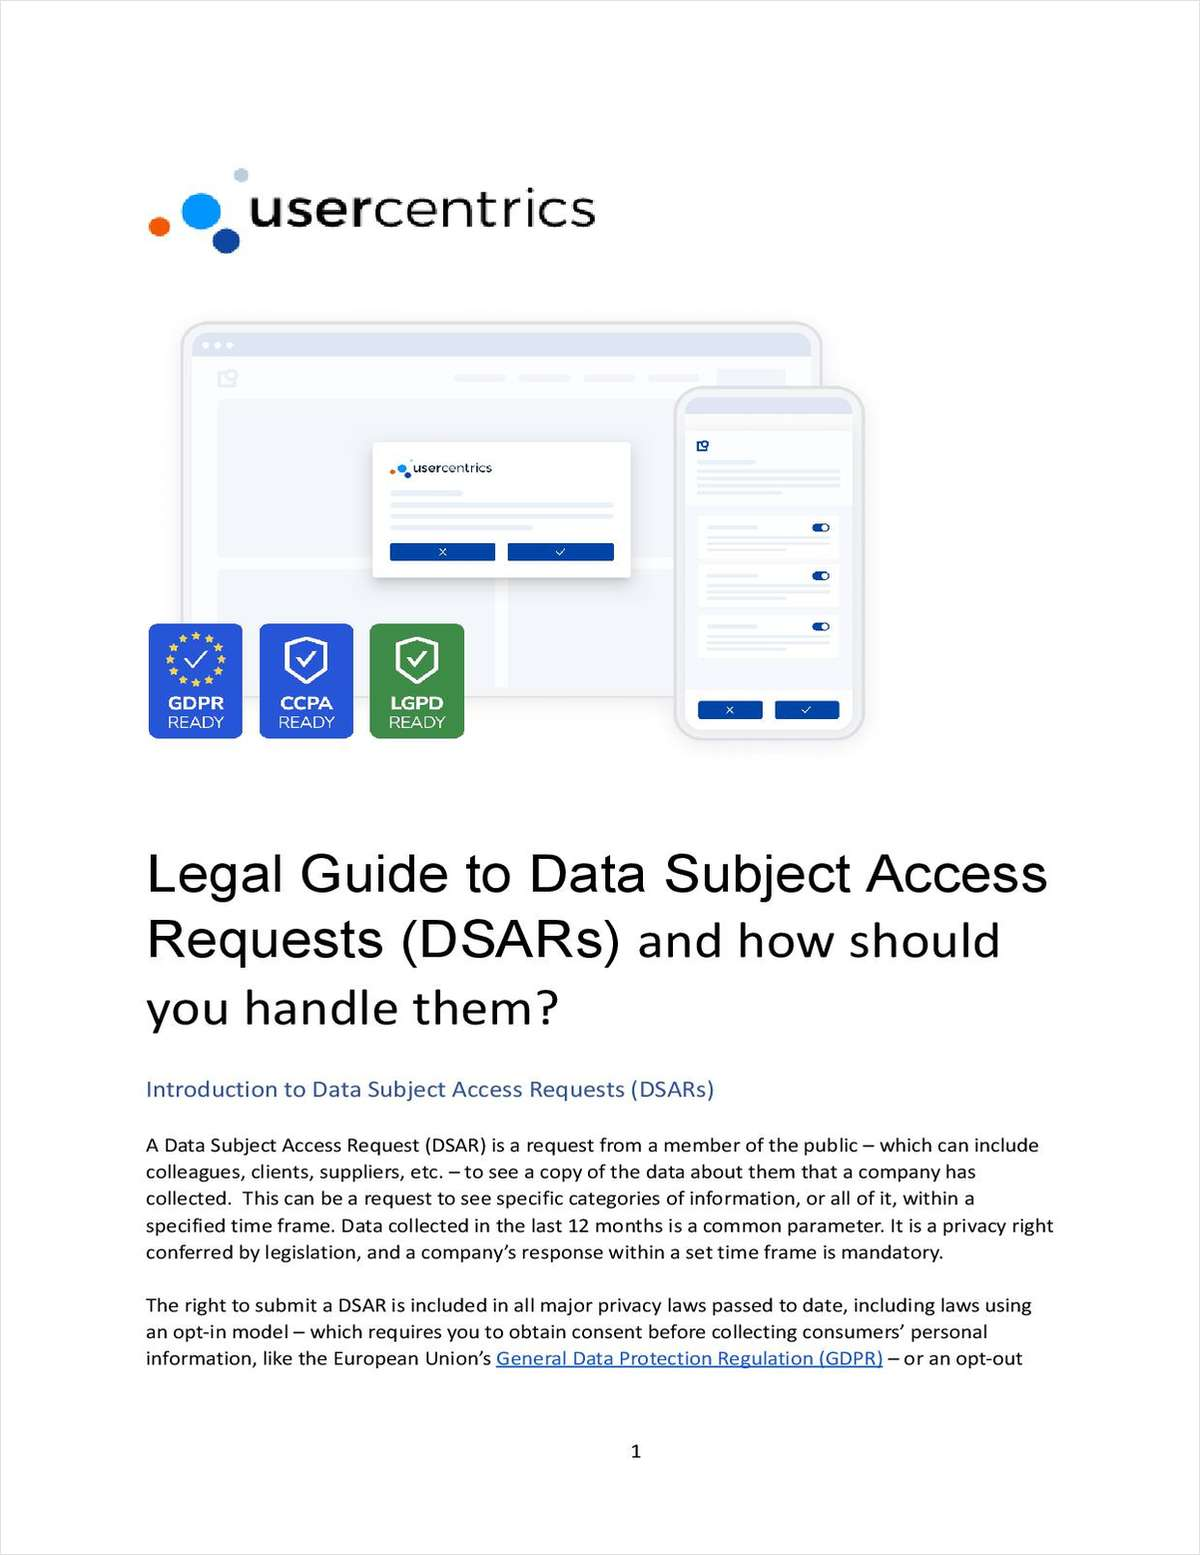 Legal Guide to Data Subject Access Requests (DSARs) and How You Should Handle Them